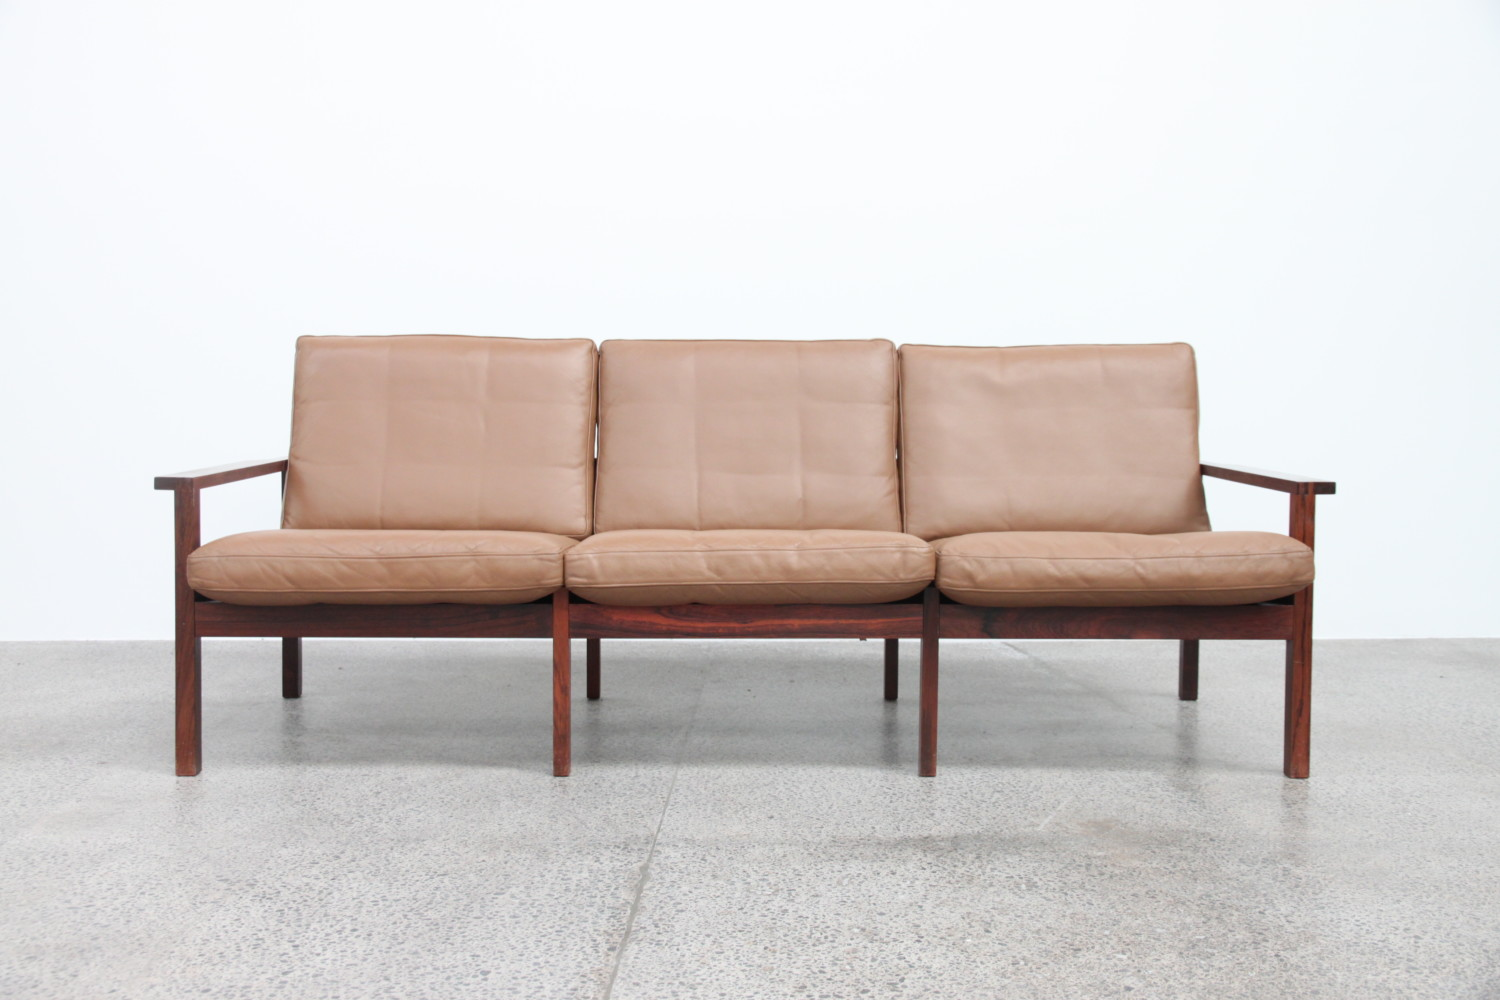 Rosewood & Leather Sofa Sold